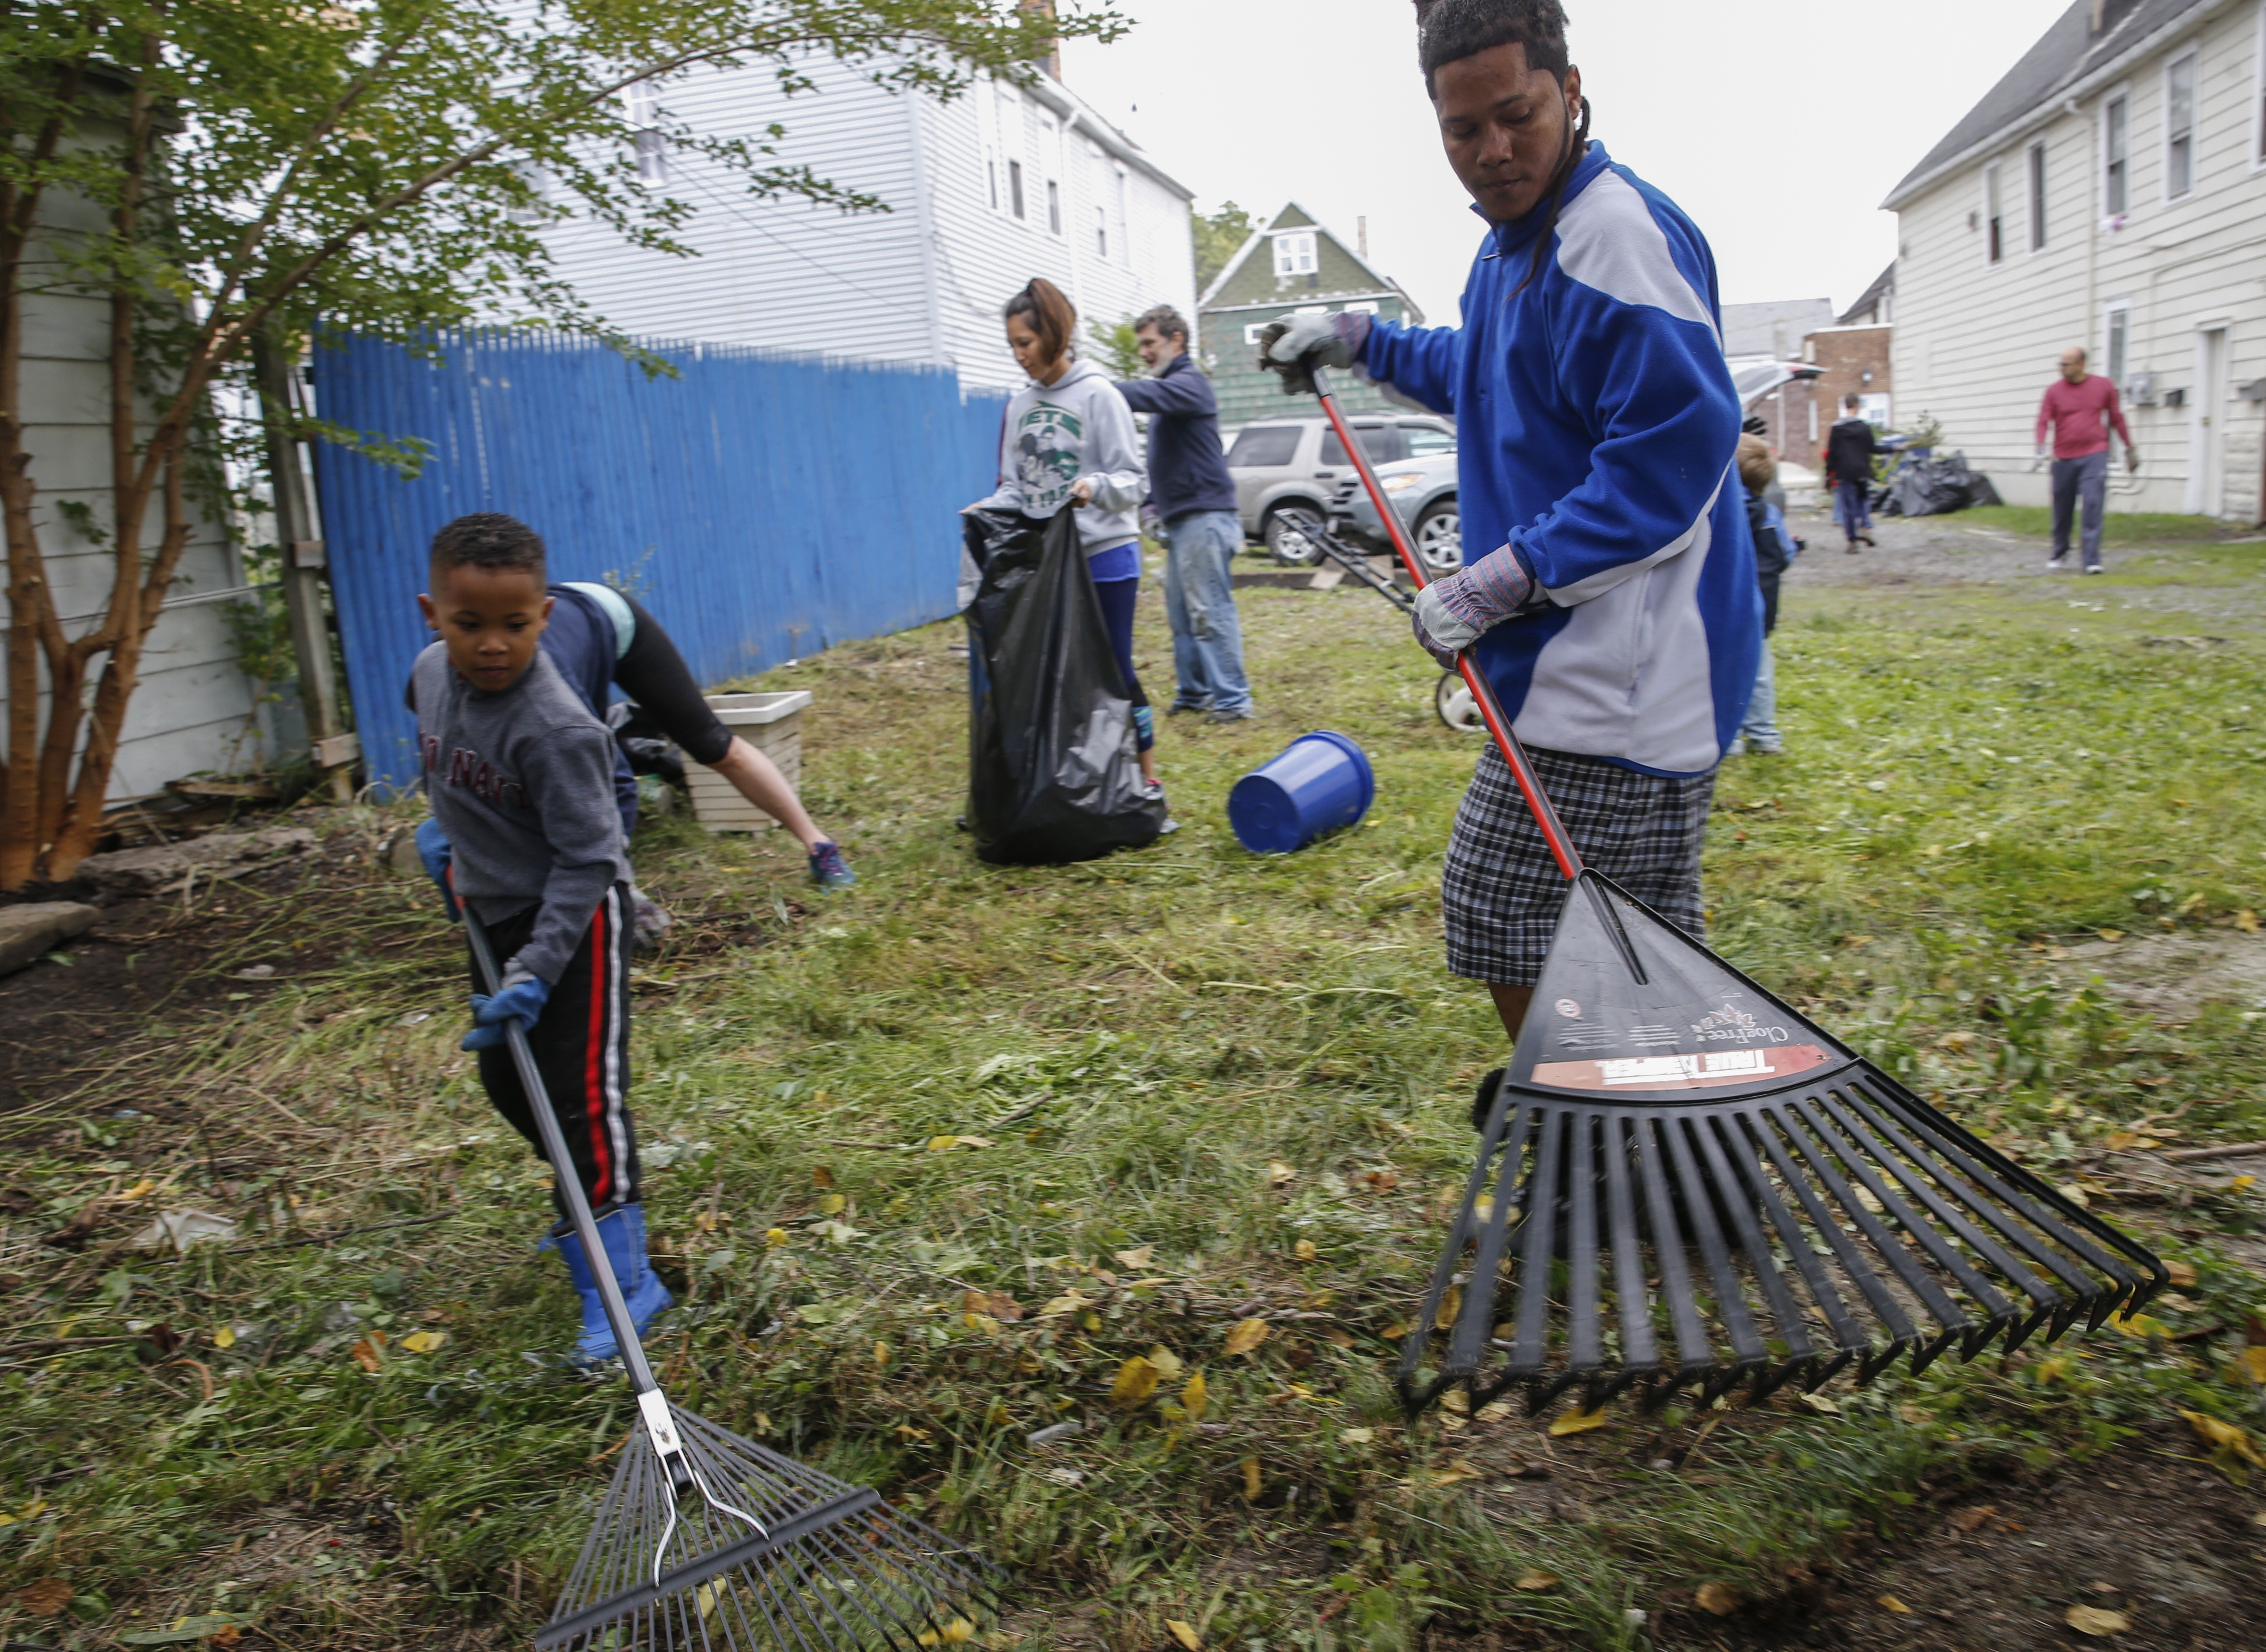 Diego Alexander, right, a refugee from Colombia, and his son Joel Sebastian, 6, rake up debris in a Bailey Avenue yard Sunday. They joined  volunteers from Congregation Shir Shalom and the Boy Scouts to help Jewish Family Service clean up the lot next to an apartment building where four refugee families live.